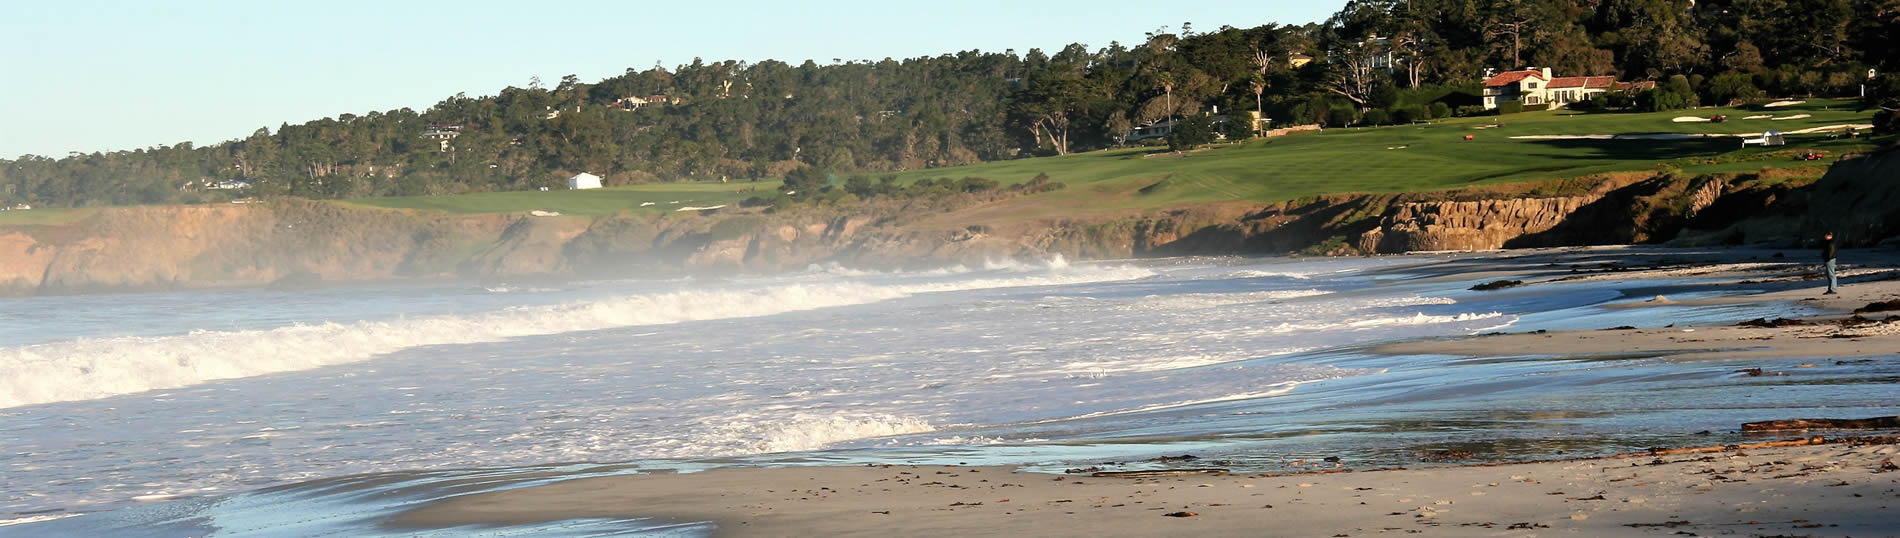 carmel beach and pebble beach golf course